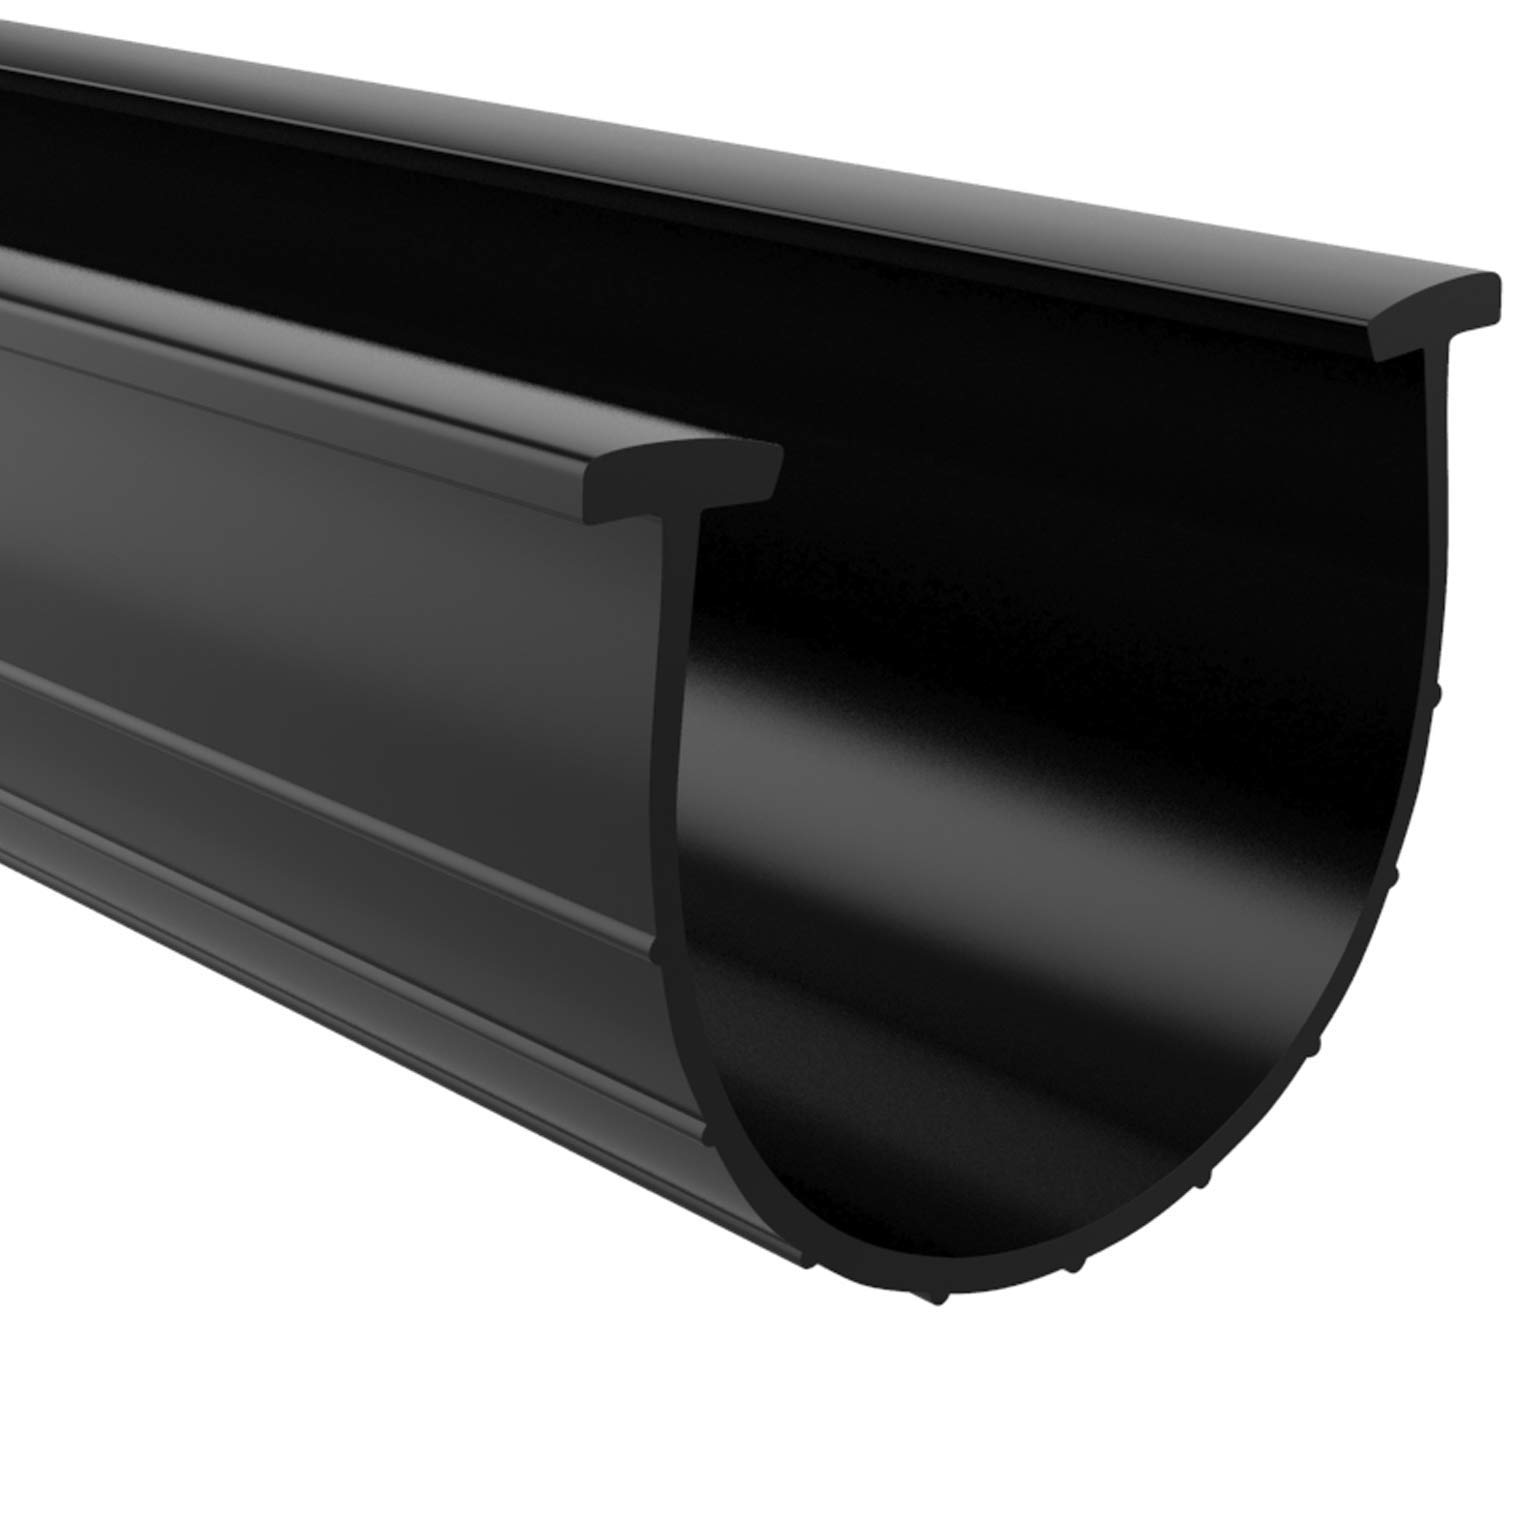 Garage Door Bottom Weather Seal T Ends 20' Long and 2 3/4'' 3'' Width (3'' 3 1/4'' Flat), Black Strip with T Ends Size 5/16'' | Garage Rubber Seal Replacement T Style Match Amarr/Clopay & More. by HOOIMA